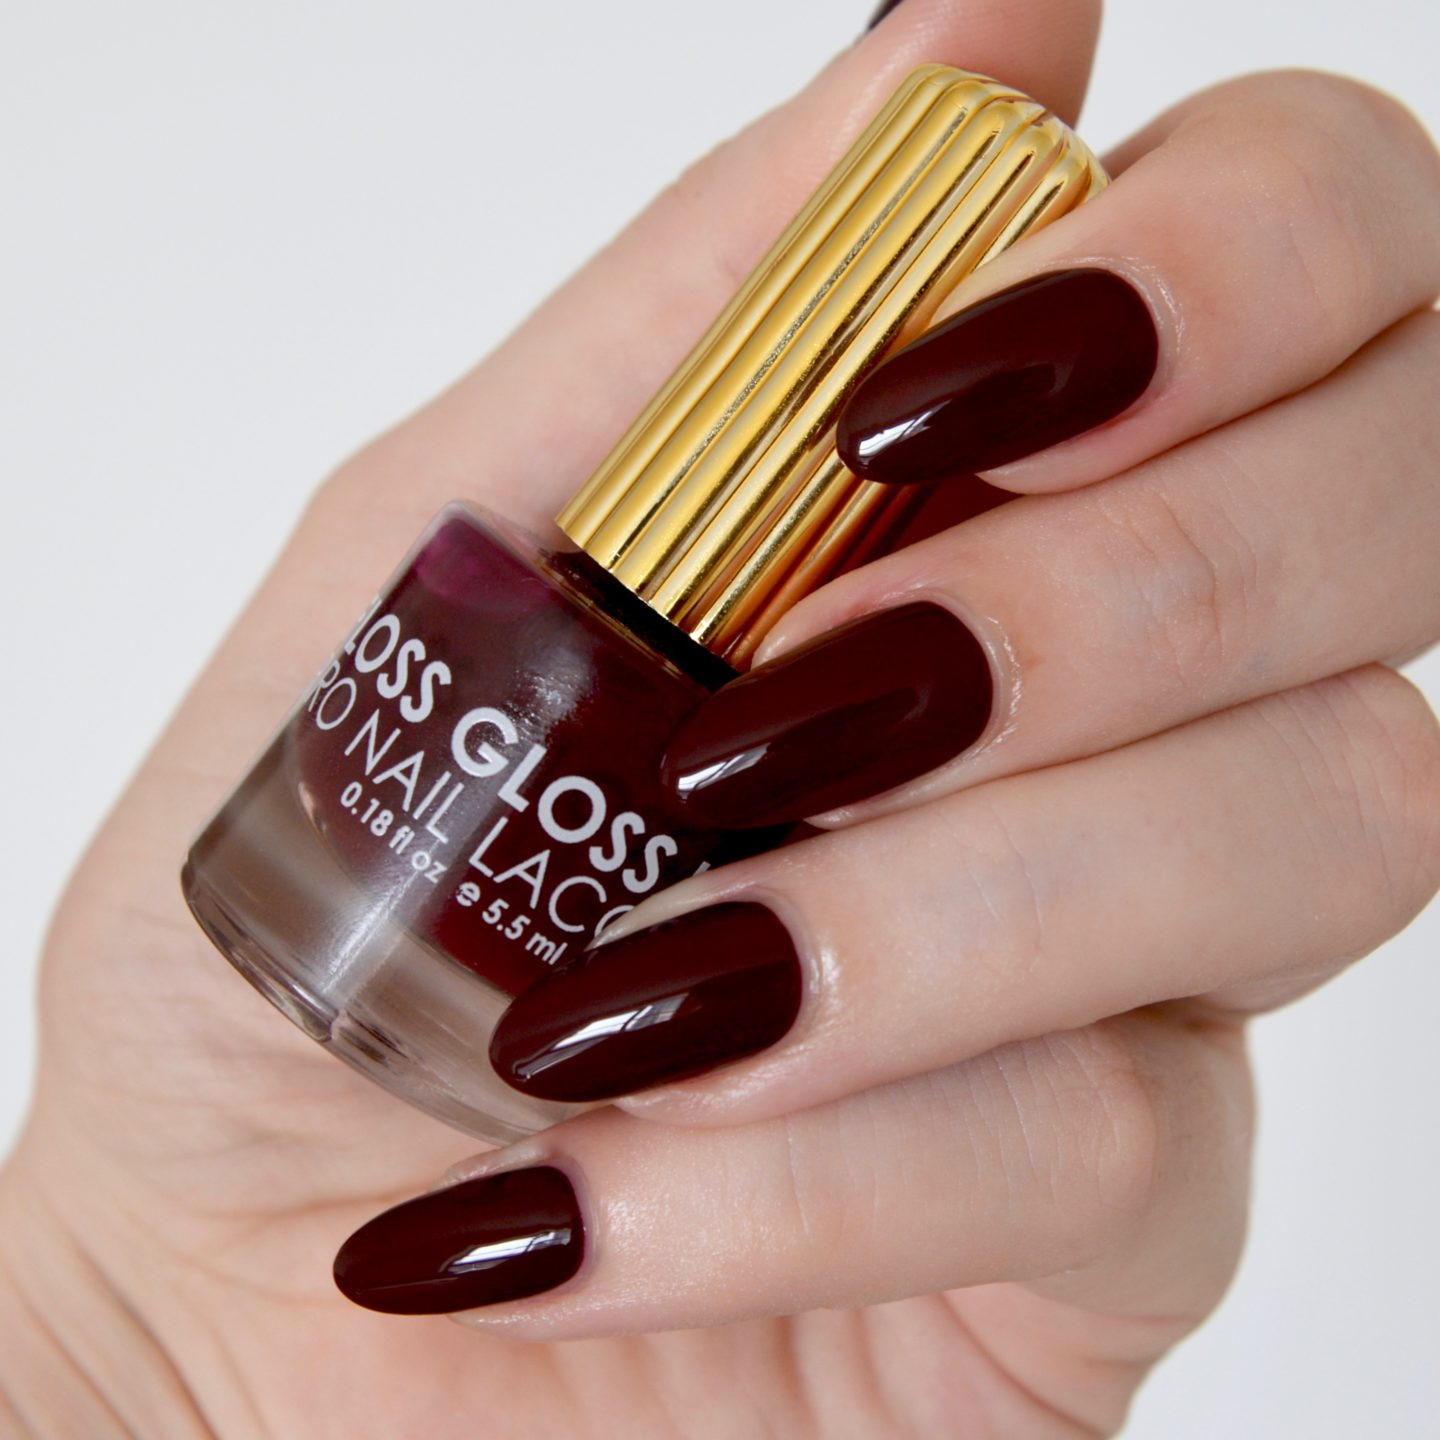 Floss Gloss Smoke On The Nail swatches